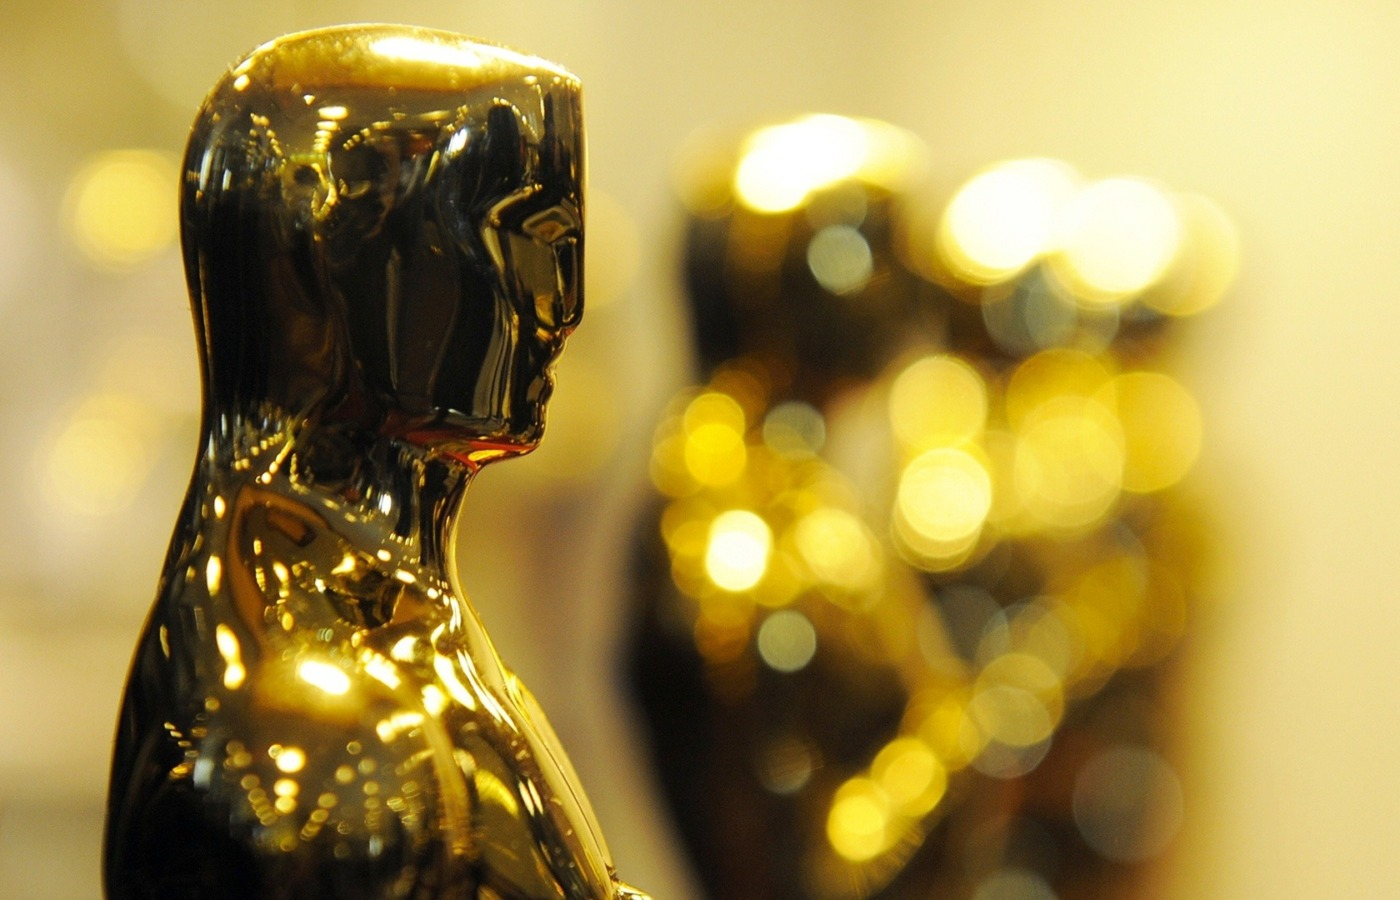 What can we expect from the 92nd Oscars? 2